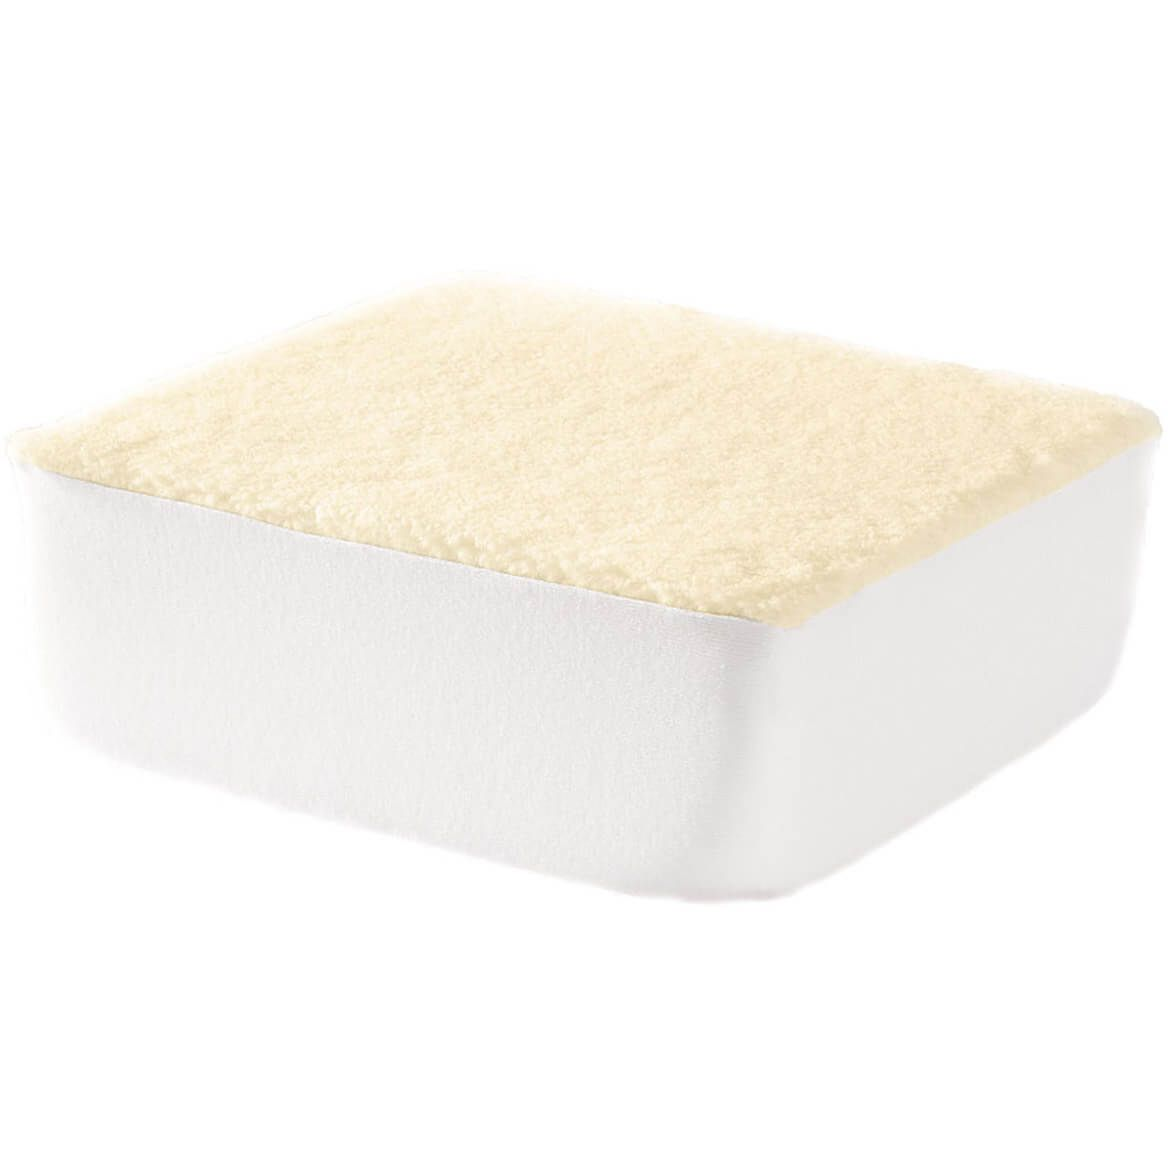 Extra Thick Foam Cushion - Large by LivingSURE™-336665